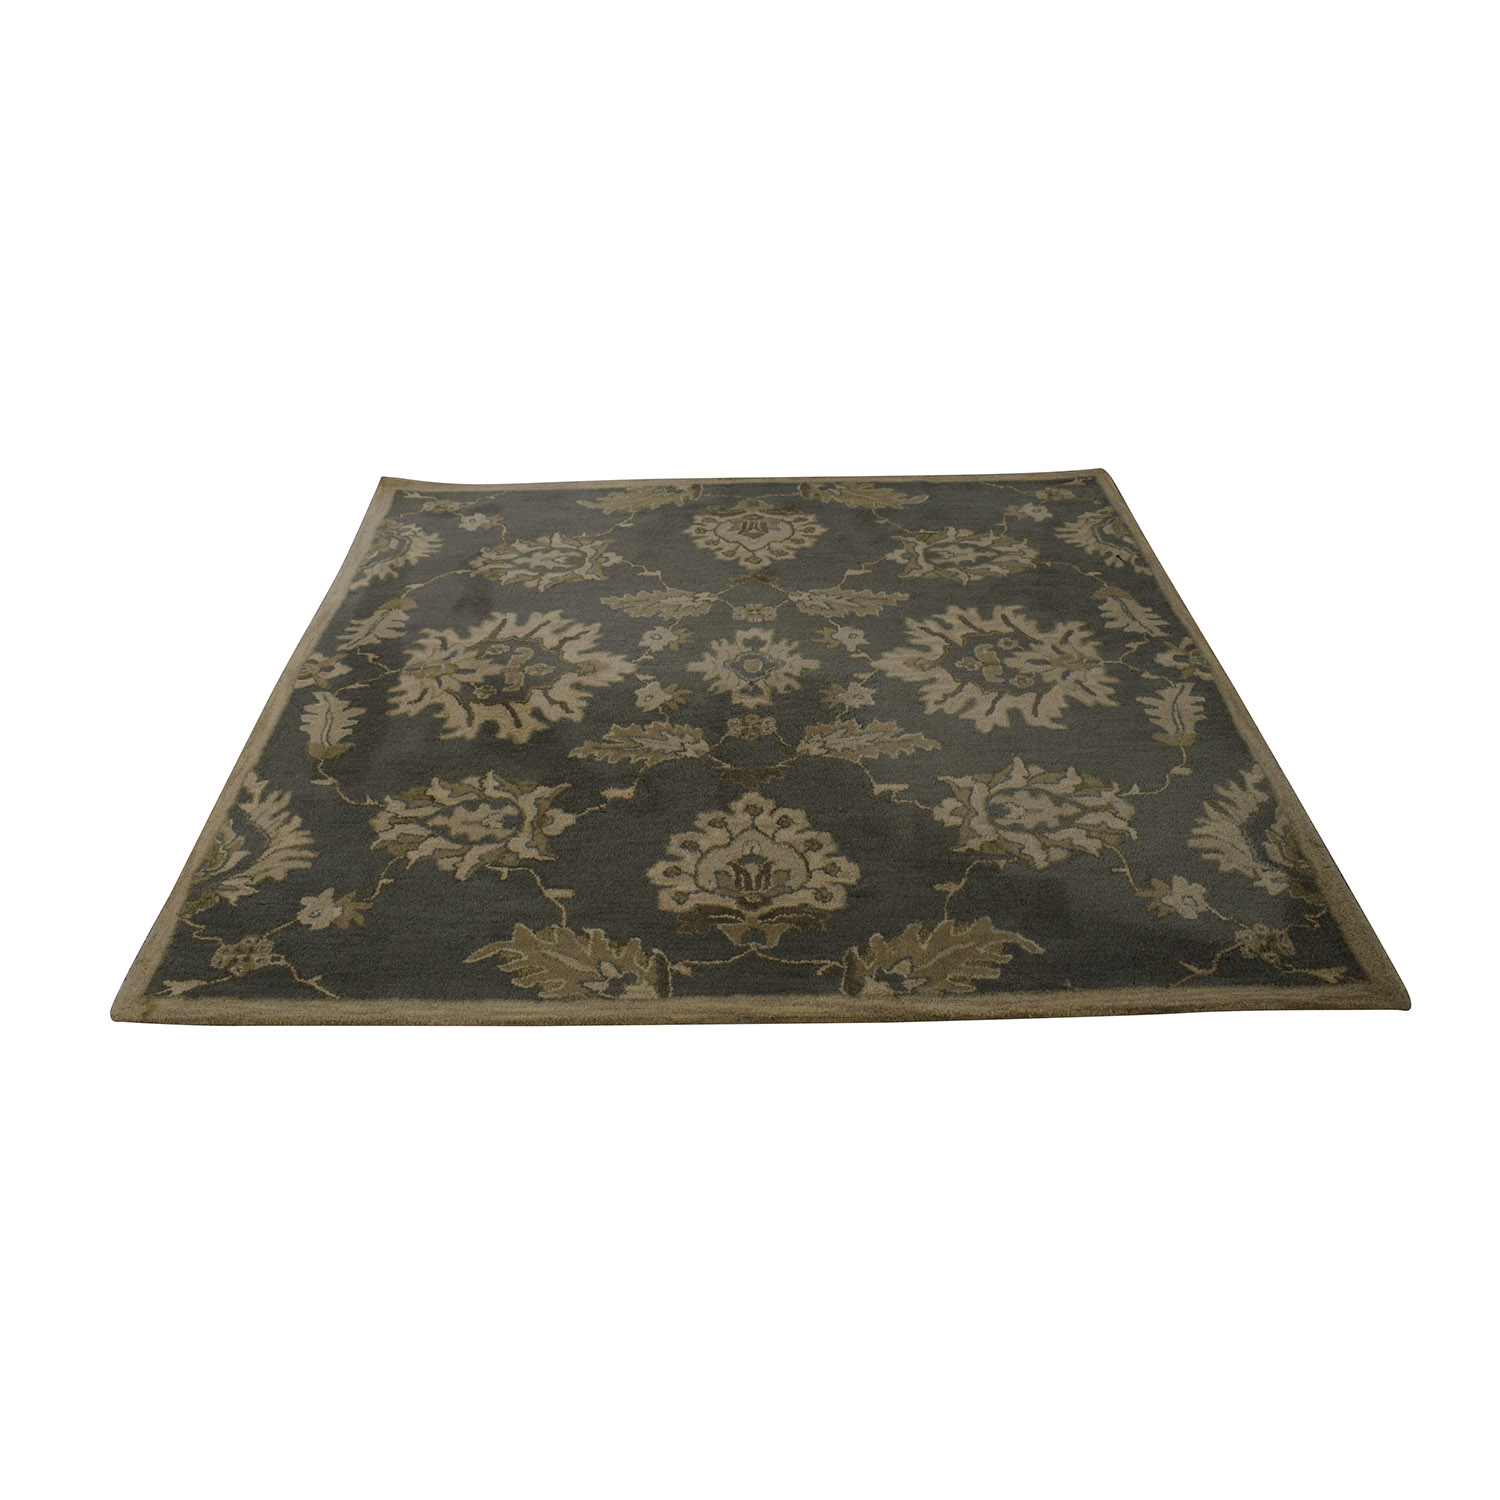 Surya Surya Basset Caesar Grey and Beige Rug discount